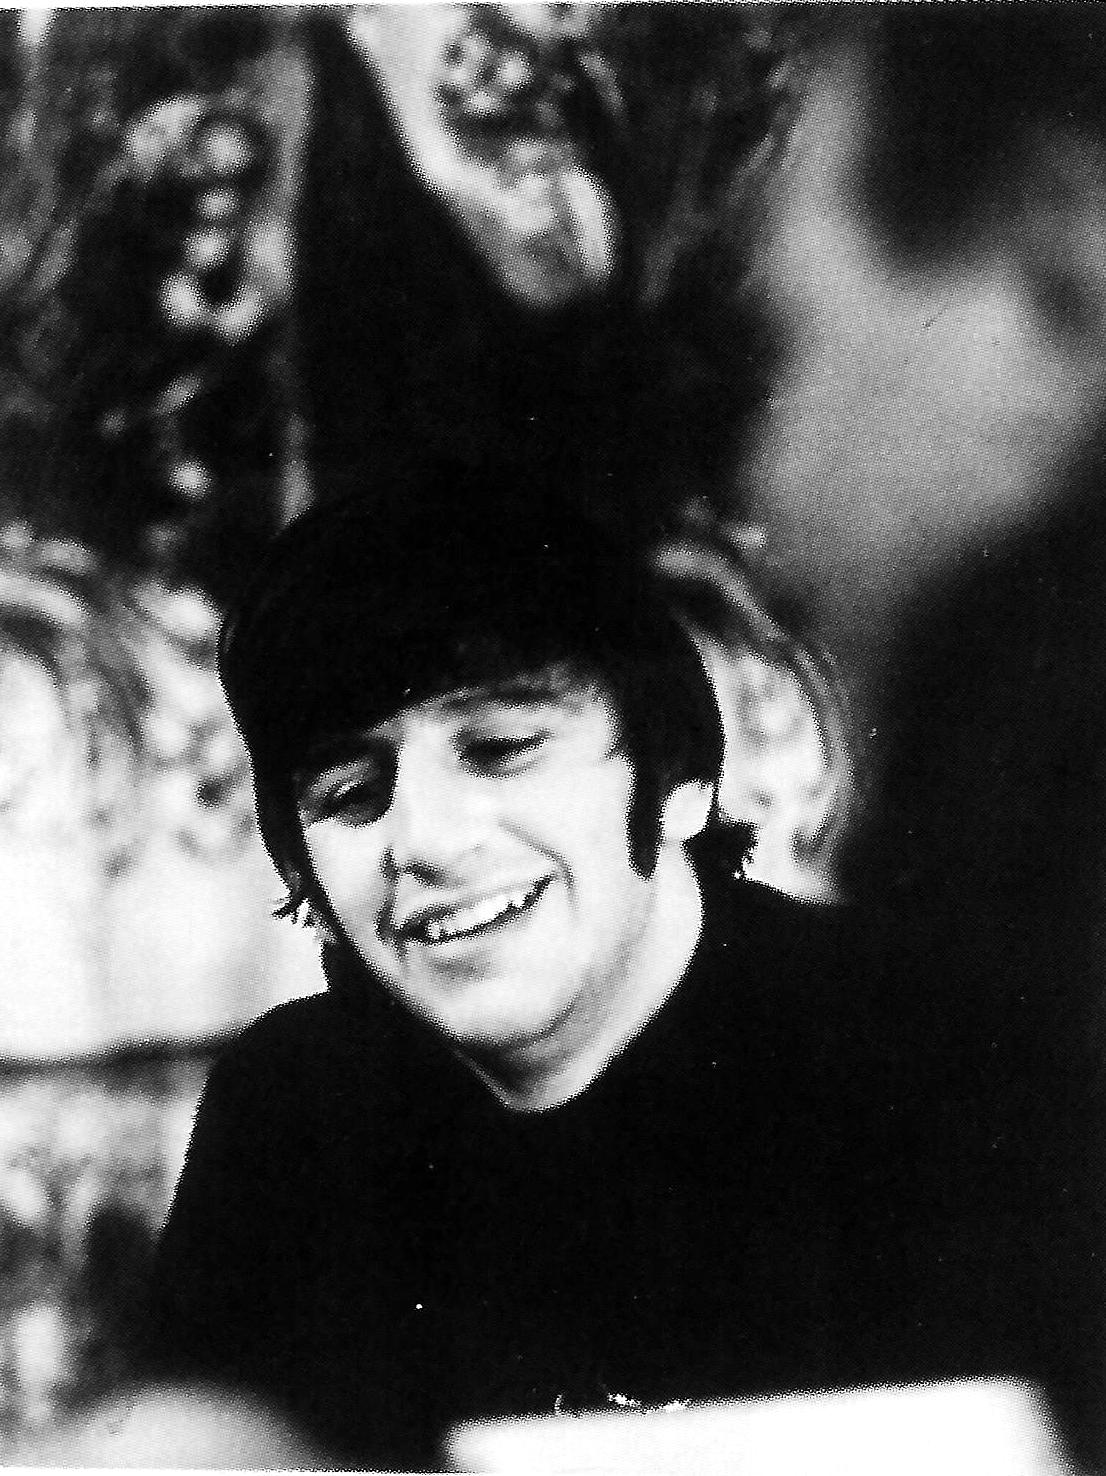 Ringo Starr Portrait By Dennis Cameron For Playboy 1965